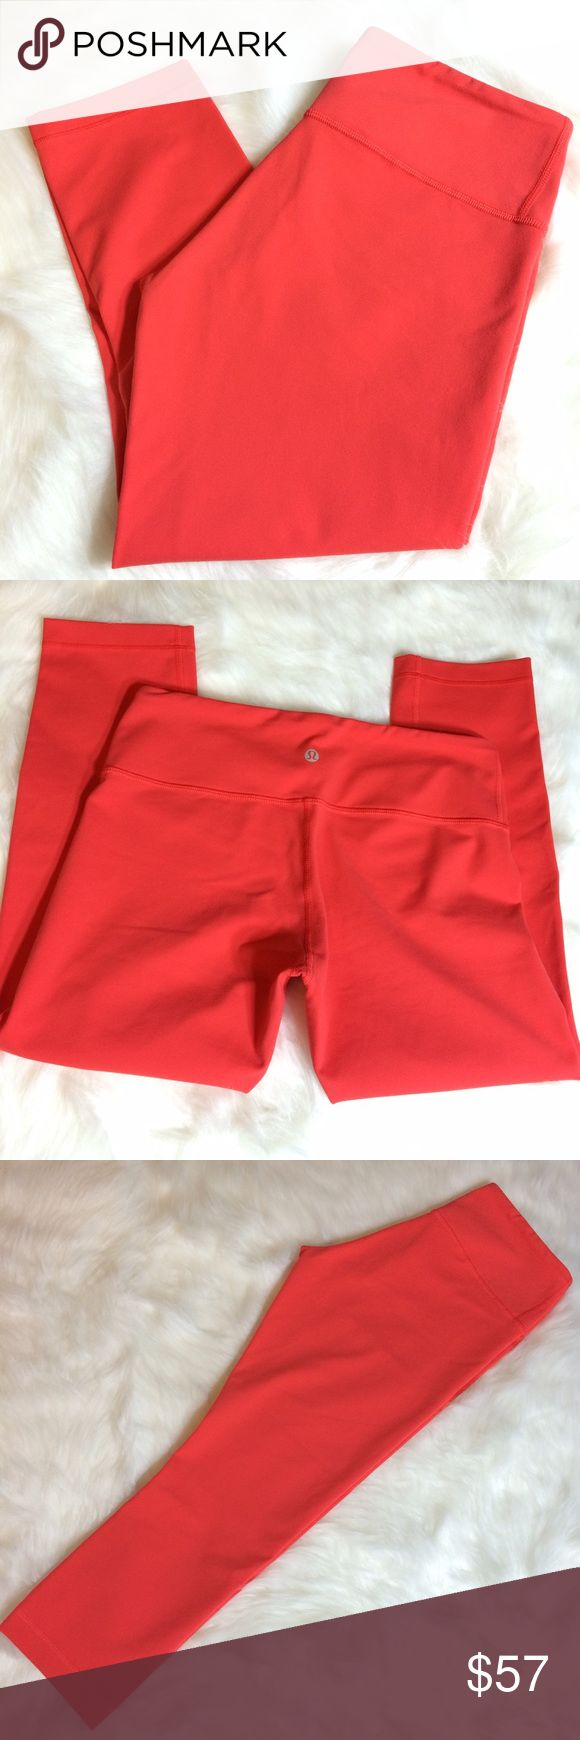 NWOT Lululemon Wunder Under Crop NWOT Lululemon Wunder Under crop. Size 8. I DO NOT TRADE NOR DO I RESPOND TO LOWBALL OFFERS. All items listed in my closet are in great condition unless specified otherwise in description. Happy shopping! lululemon athletica Pants